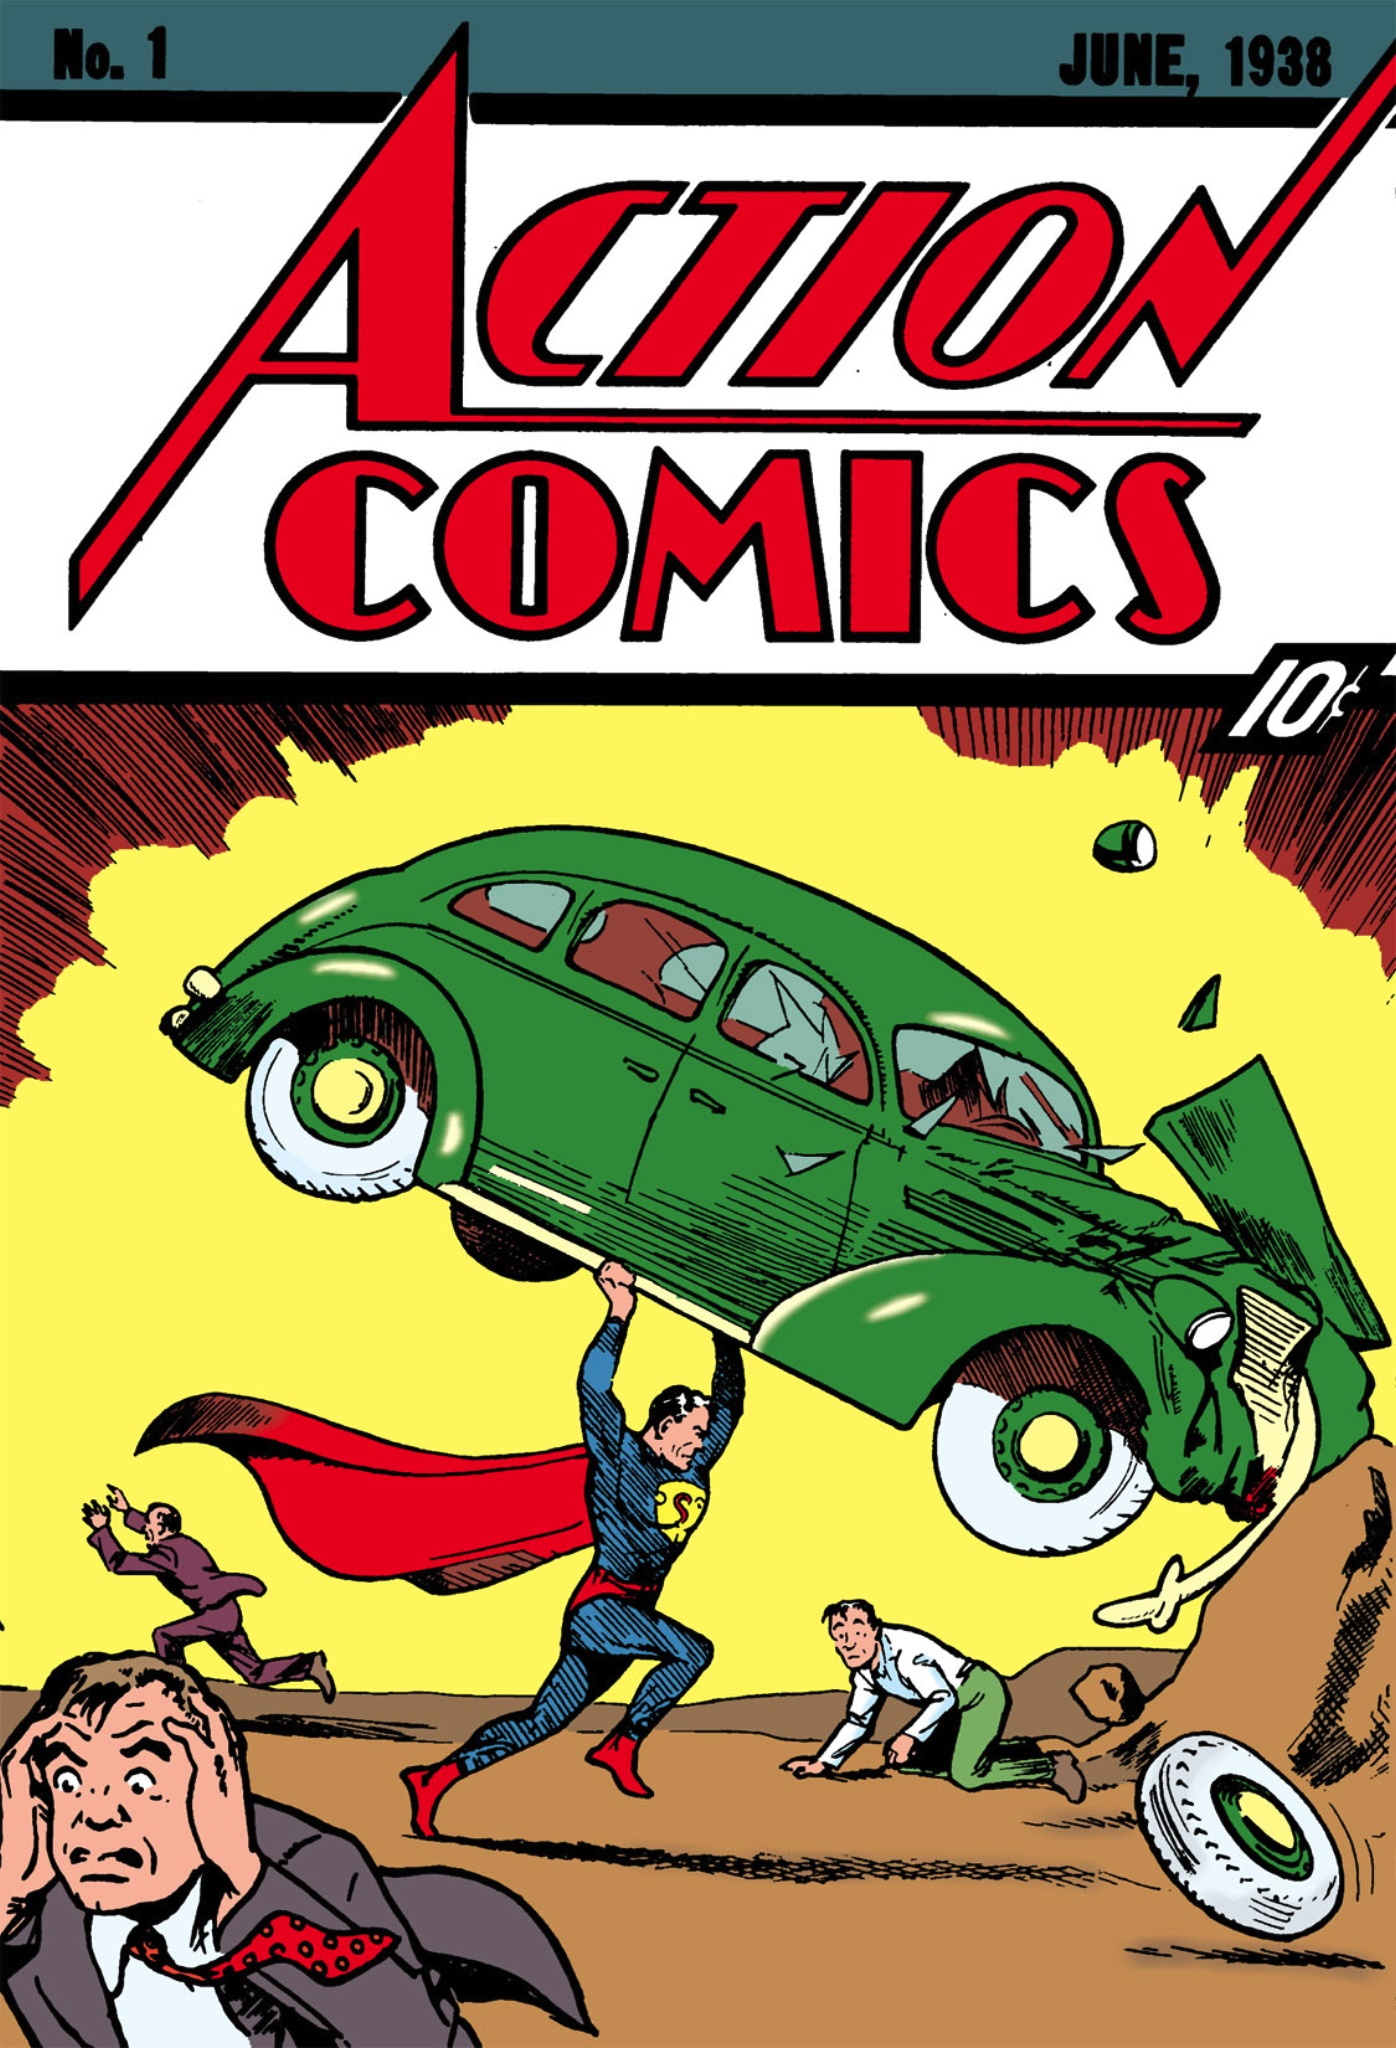 Action Comics Comic Book Back Issues of Superheroes by A1Comix